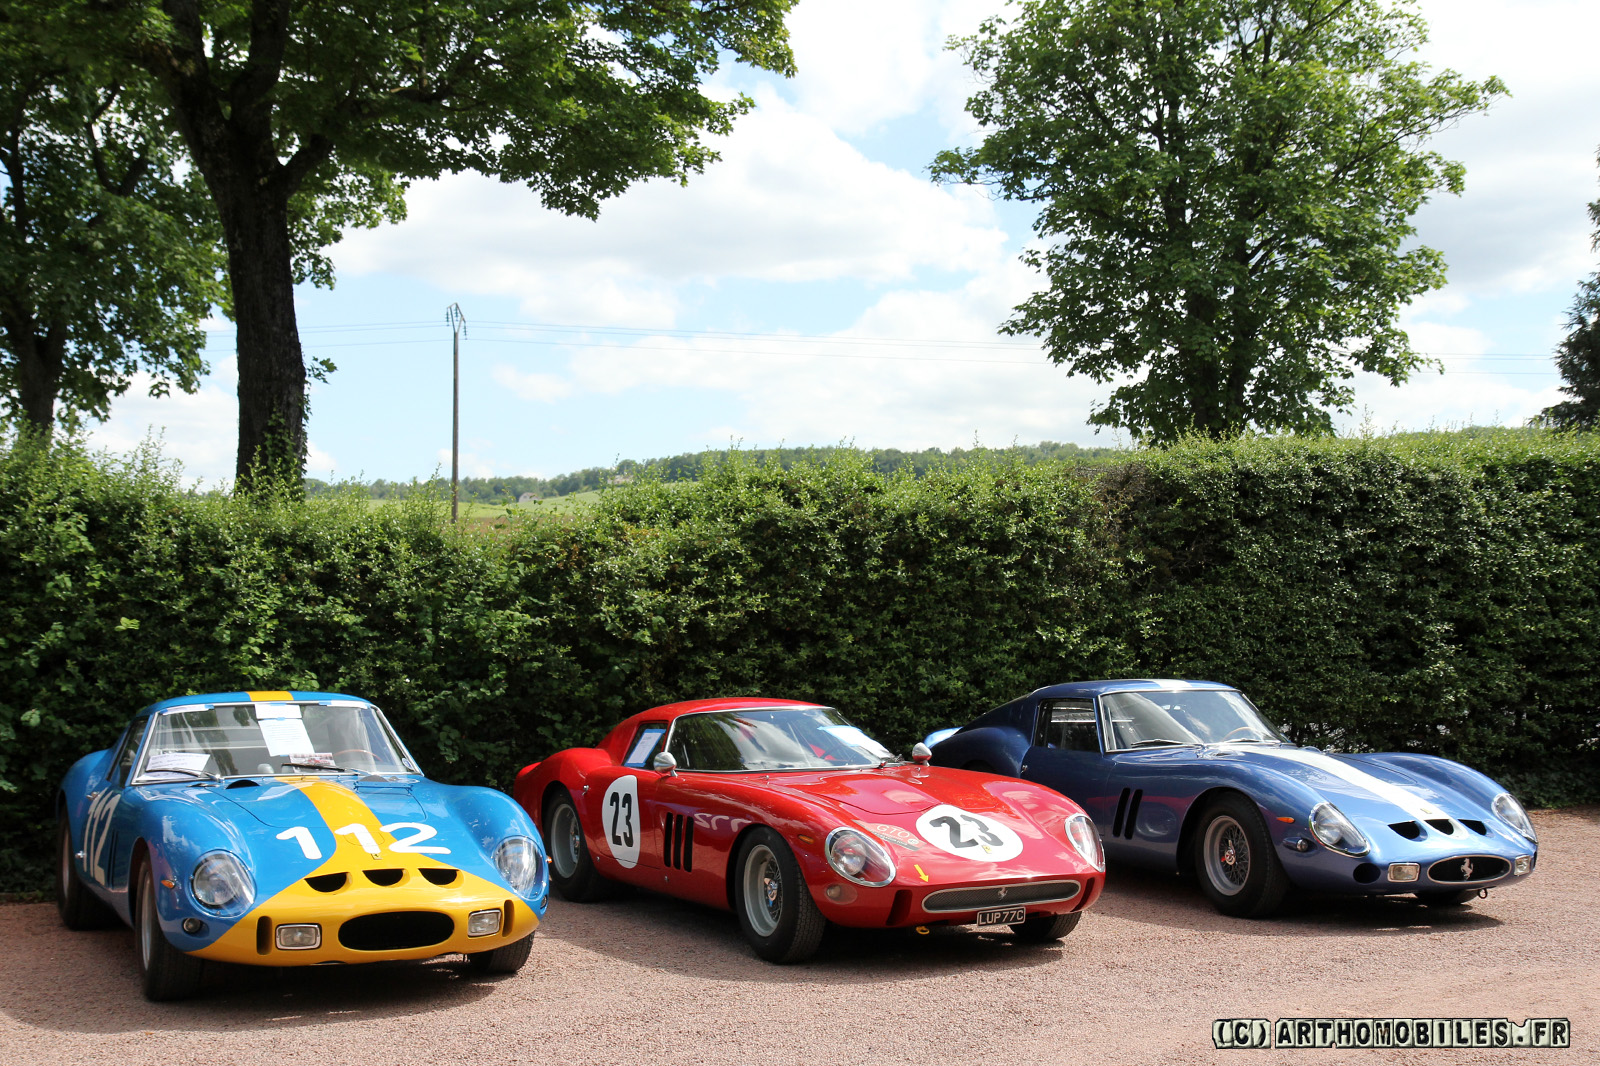 MODELART111 - 08 : 250 GTO set --> the 39 models